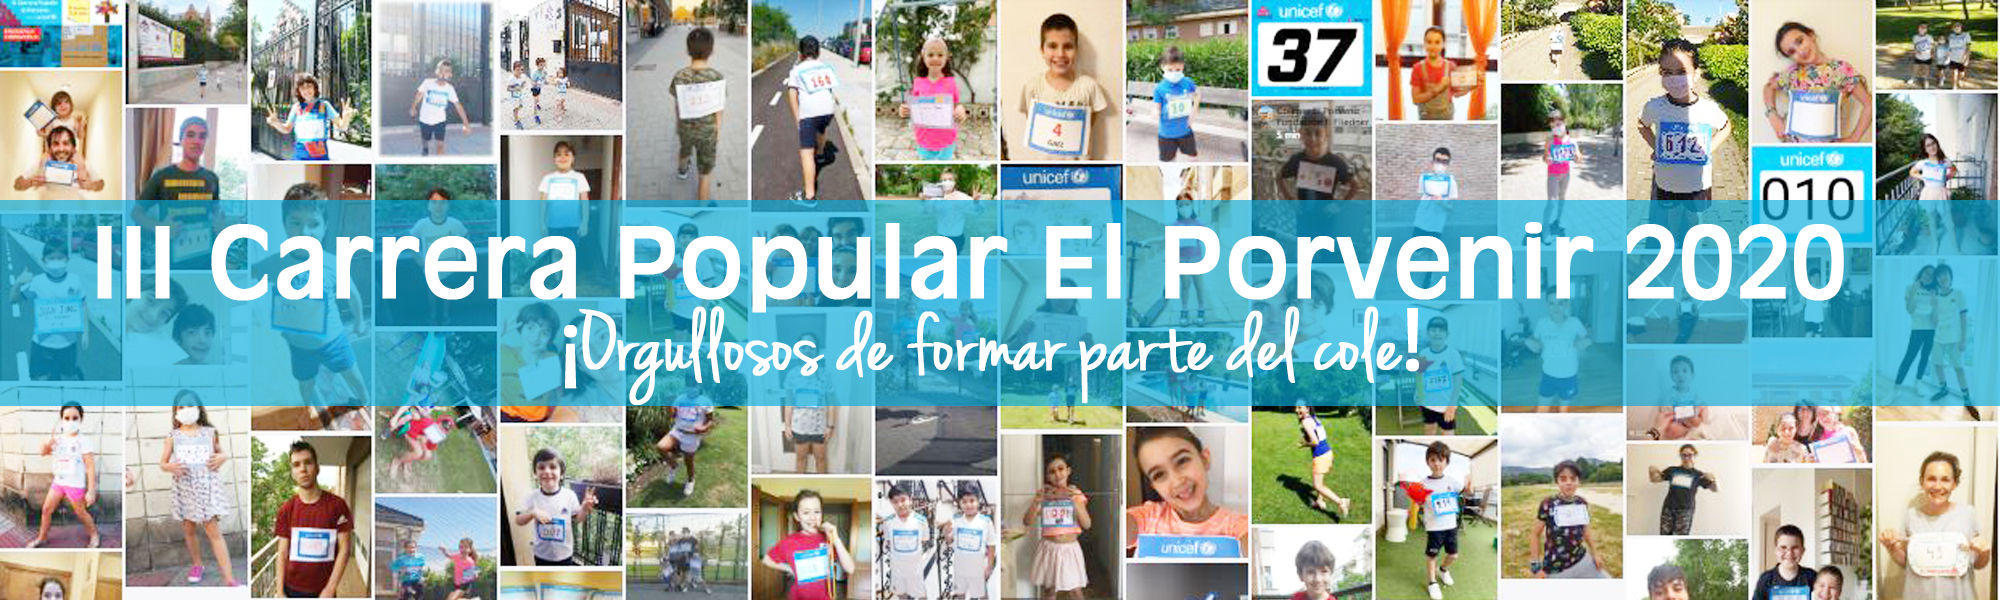 Fotos III Carrera Popular El Porvenir 2020